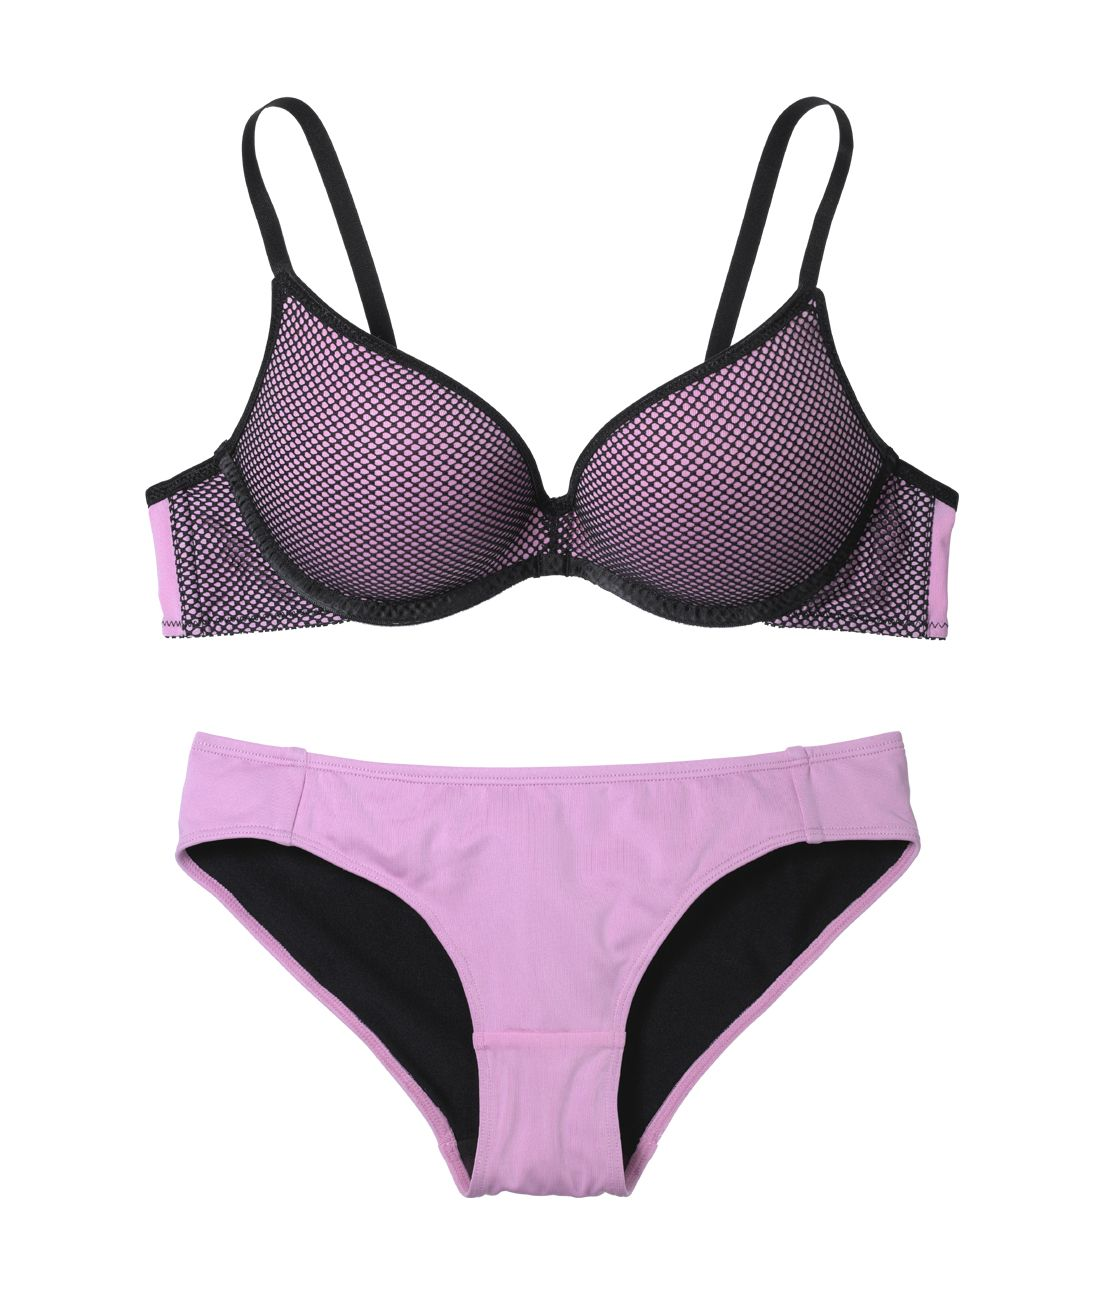 YM Simple net bra set